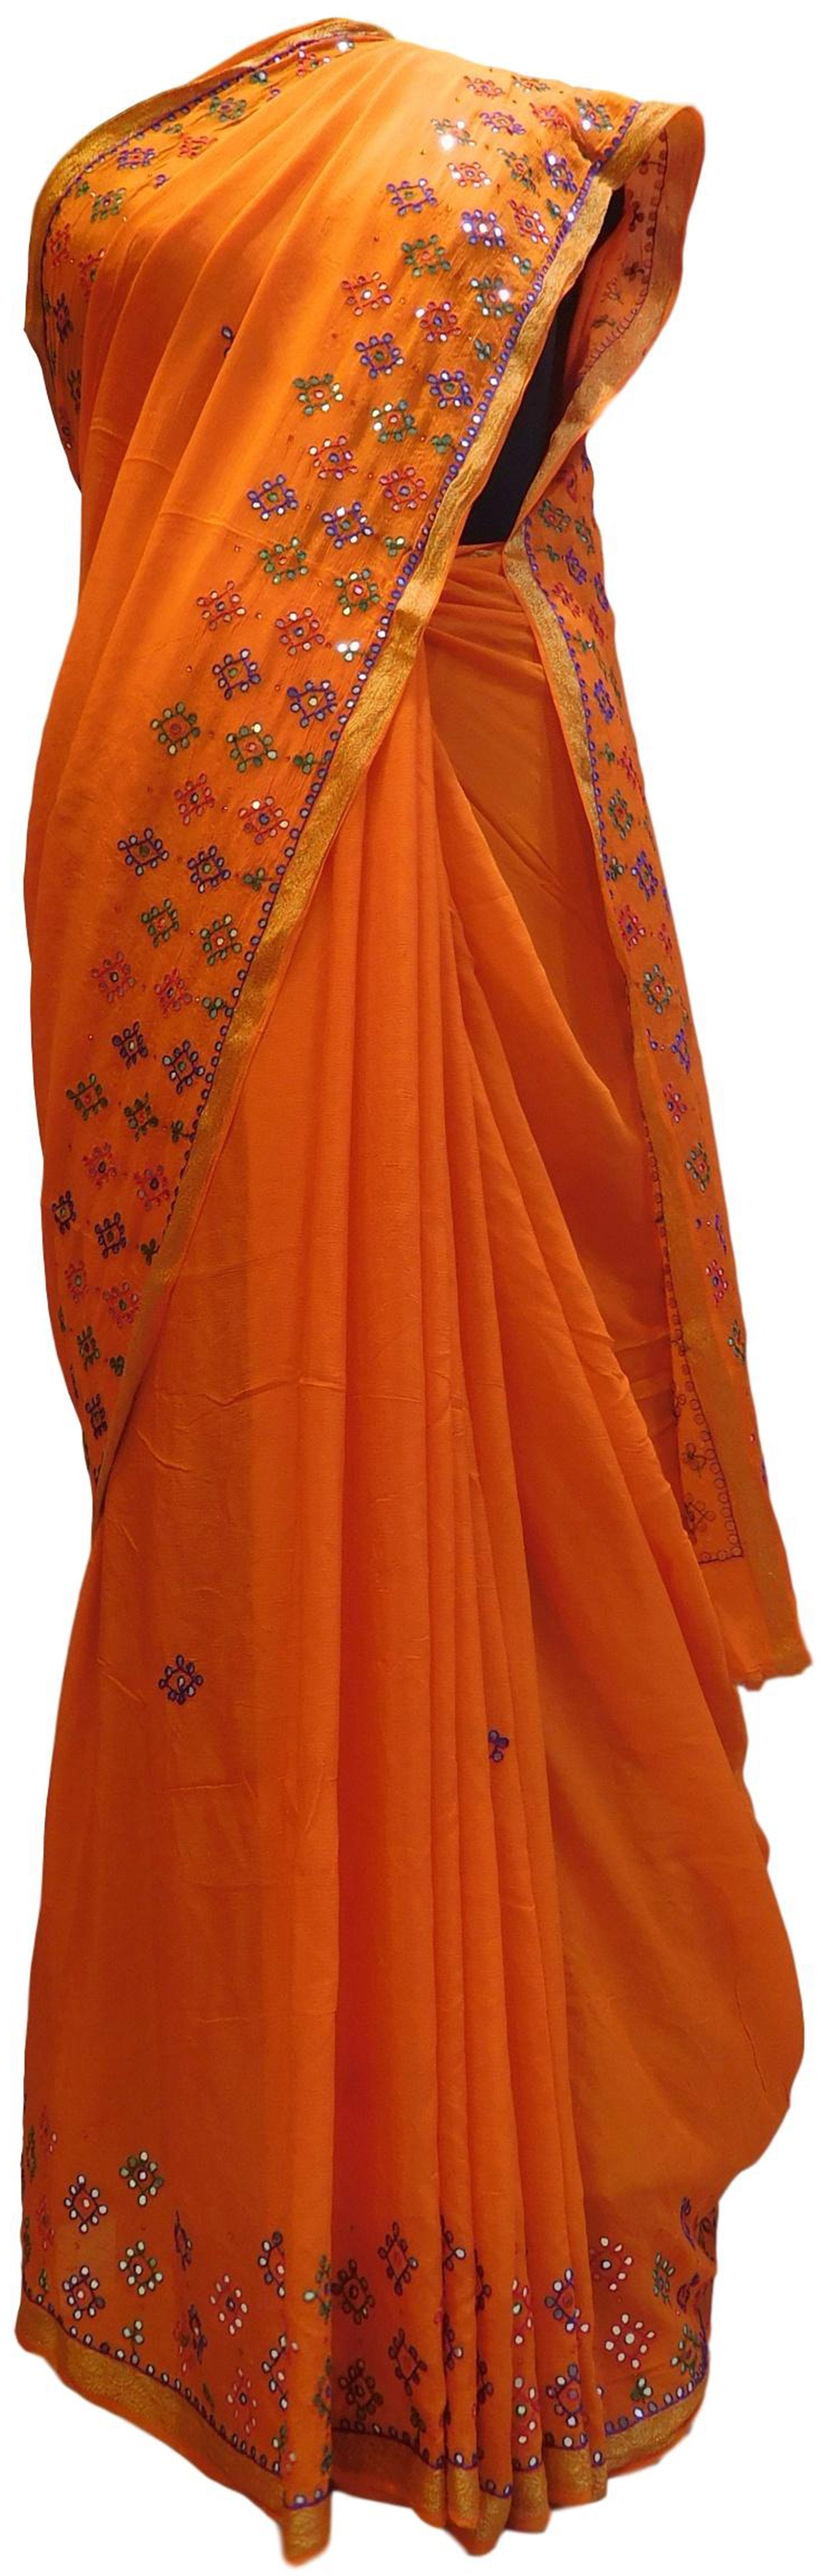 Orange Designer PartyWear Crepe (Chinon) Thread Mirror Work Saree Sari